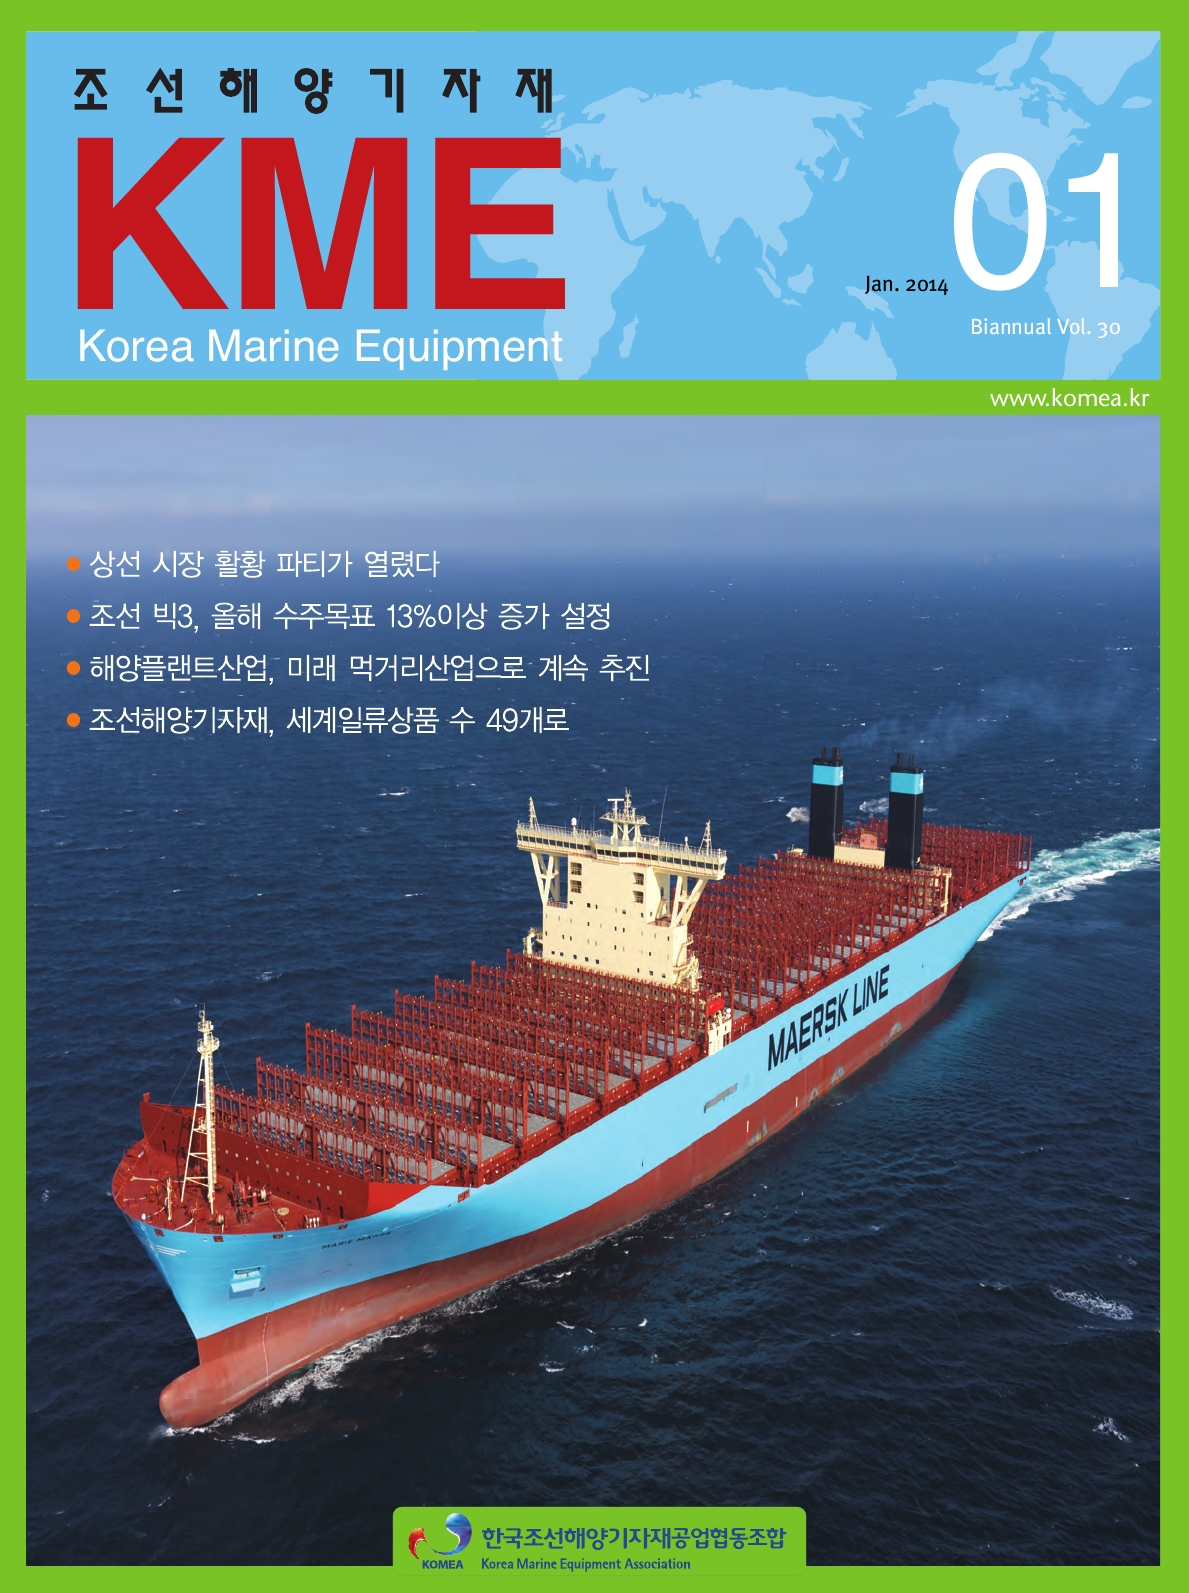 2014 上 KME (Korea Marine Equipment)